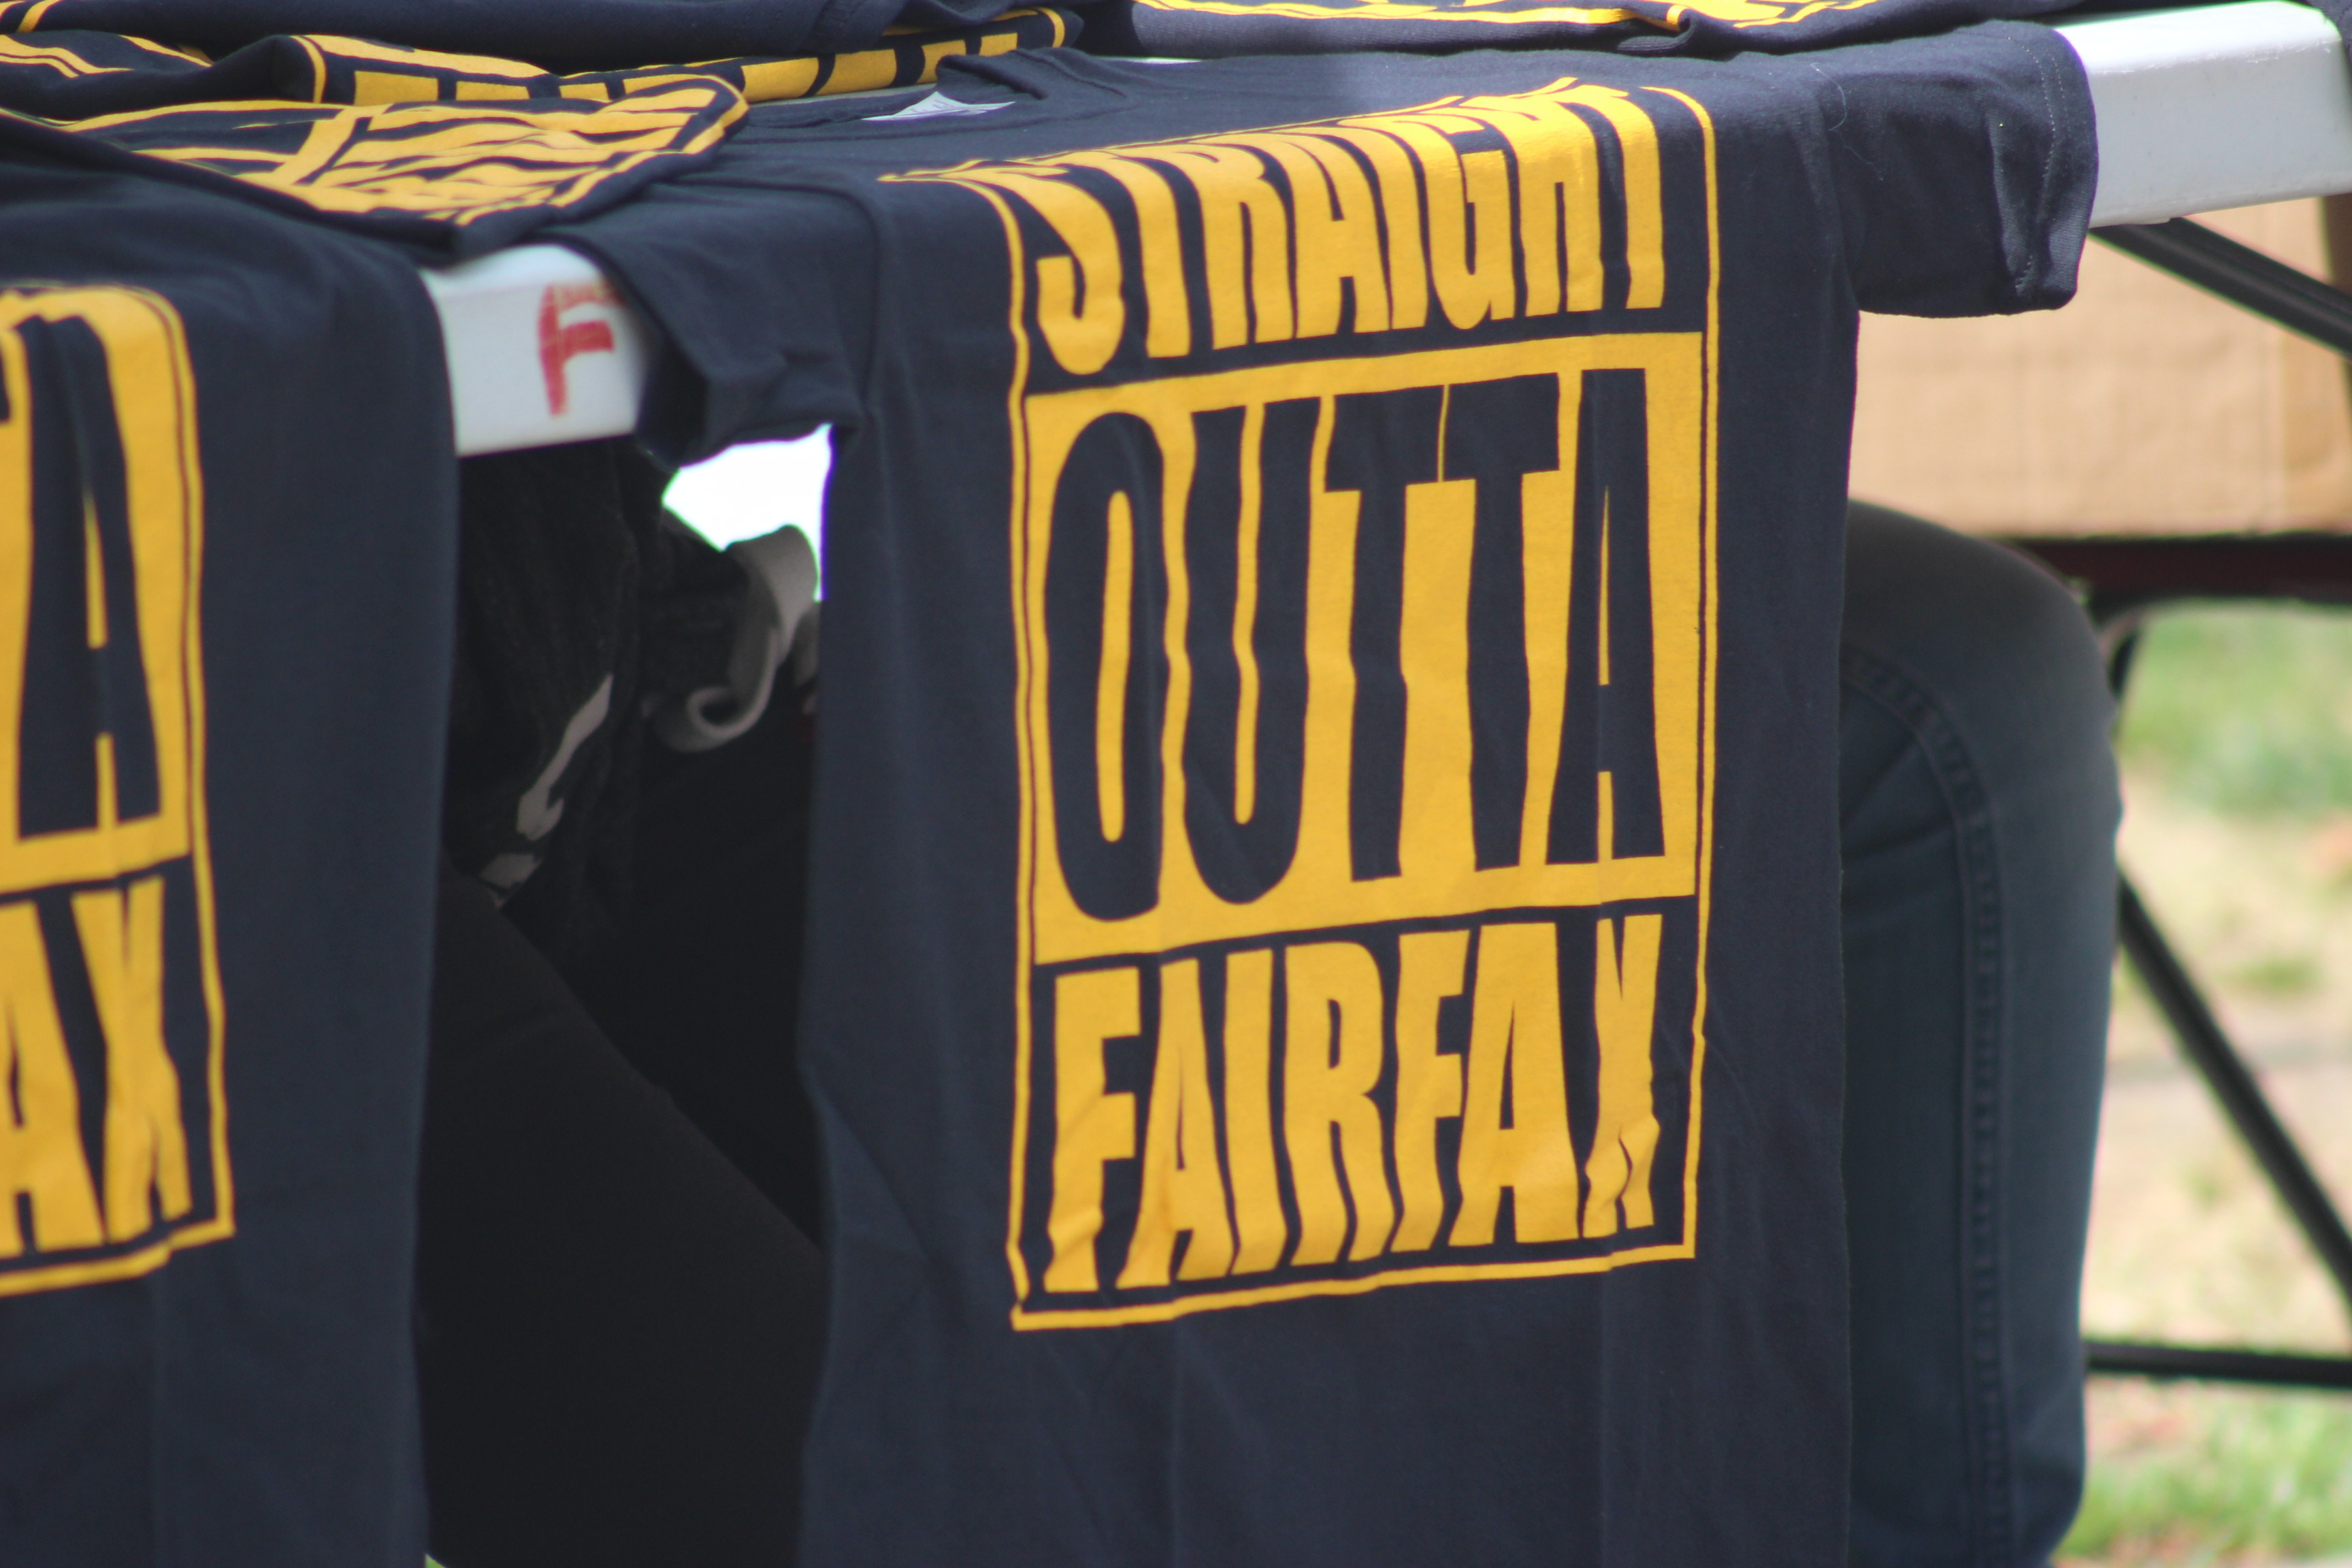 MTP SD- Straight Outta Fairfax shirt